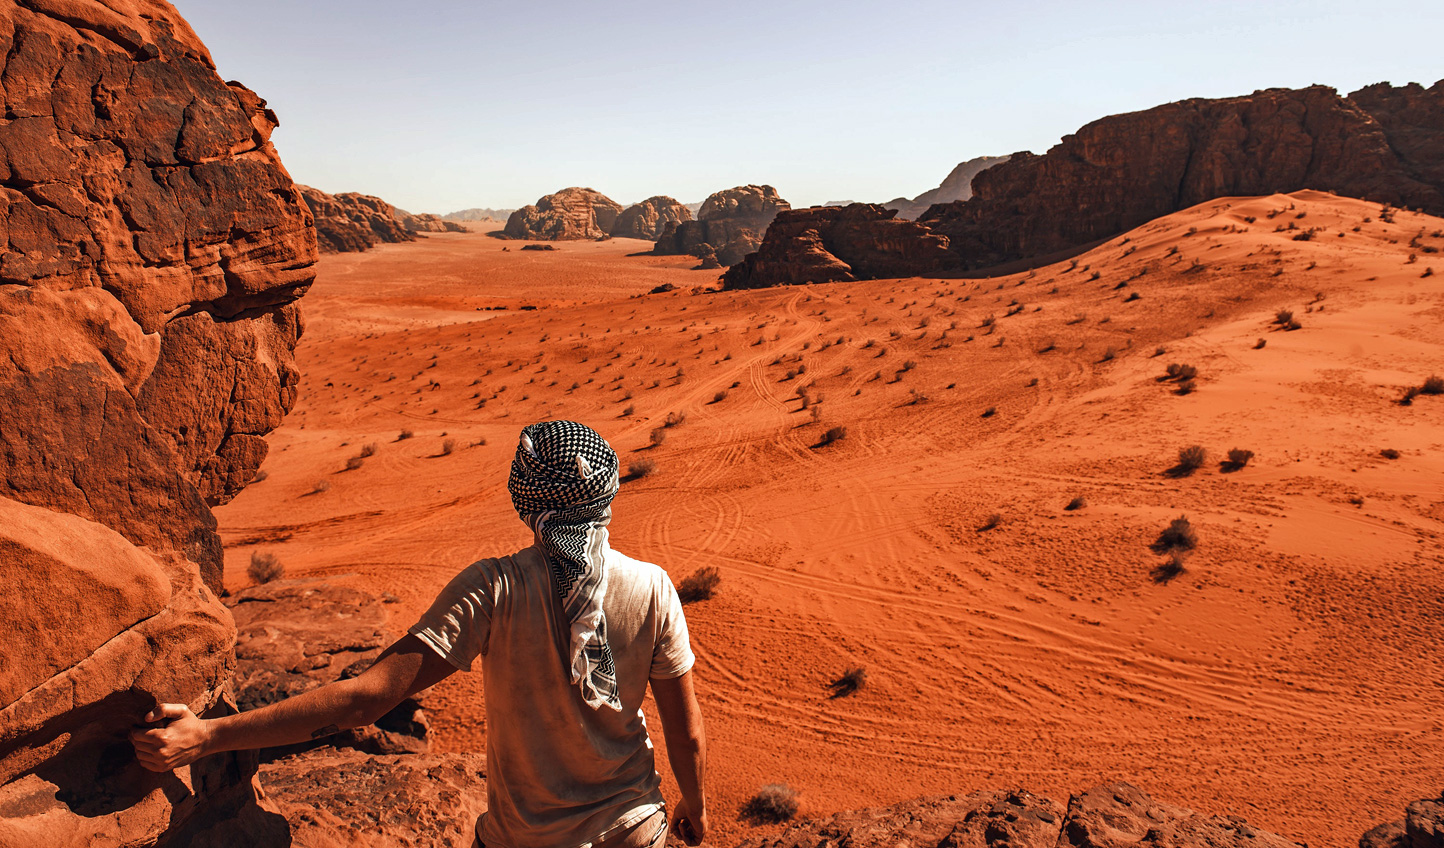 Set out on an adventure across Jordan